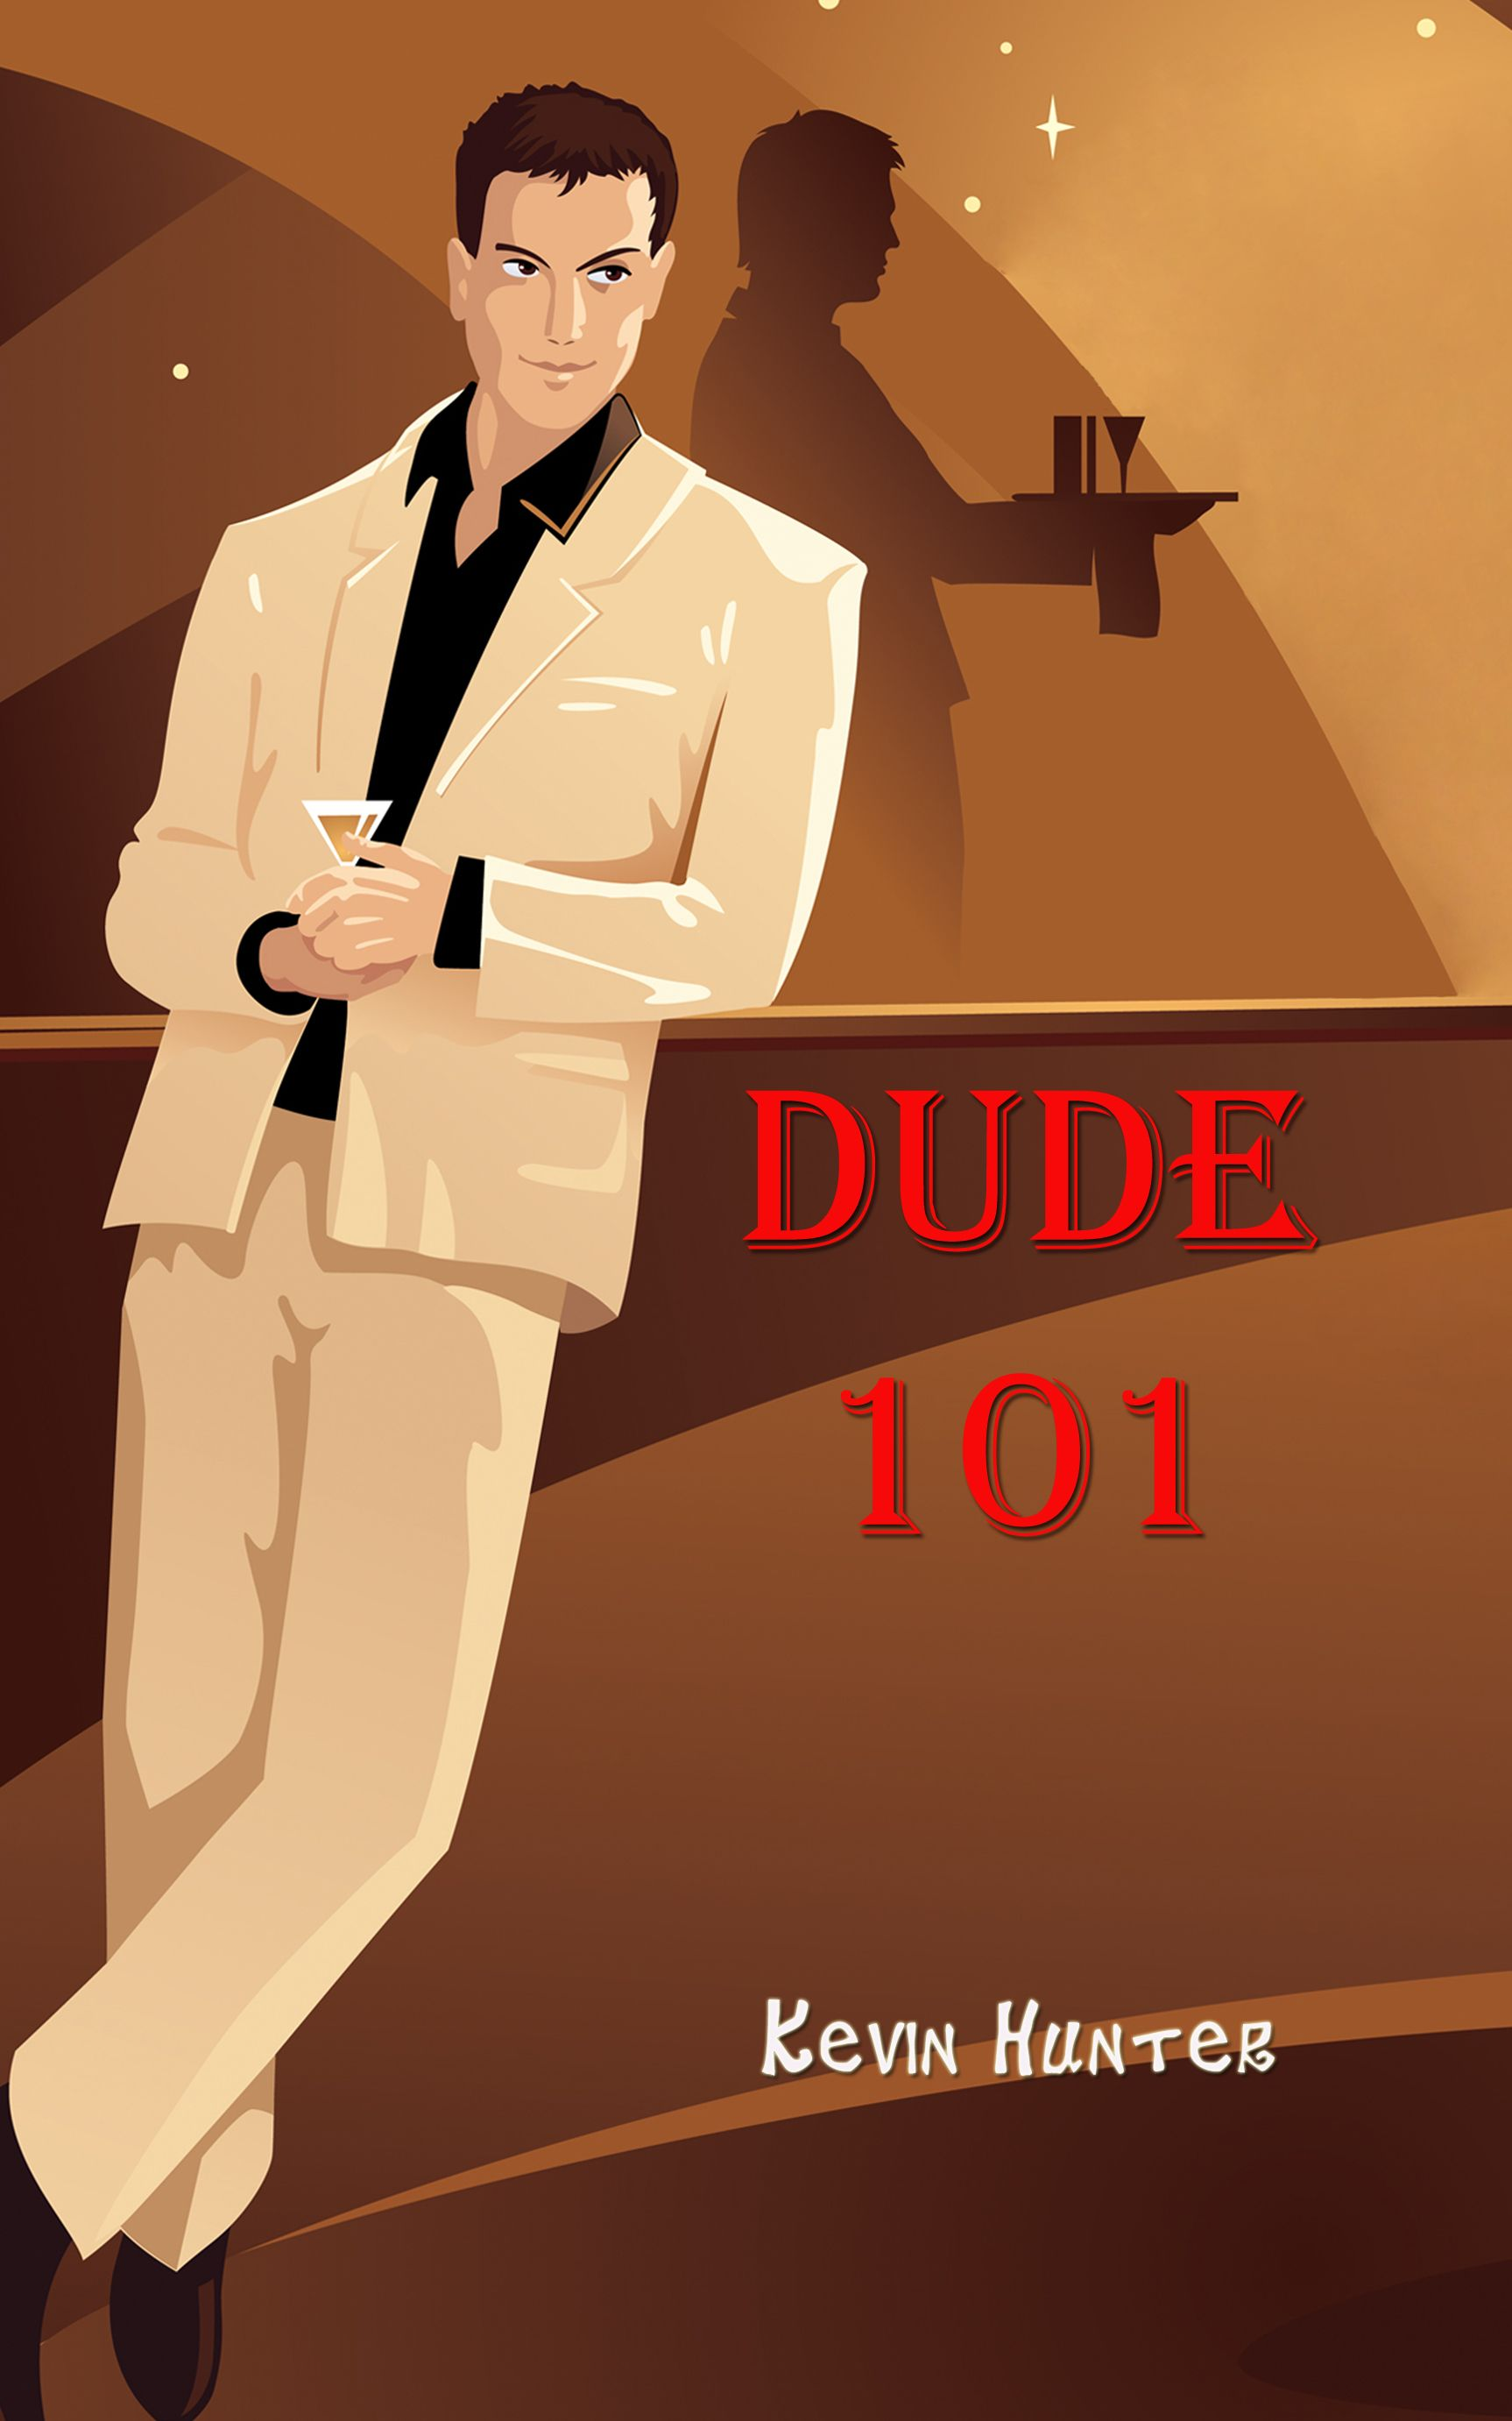 Dude 101 by Kevin Hunter